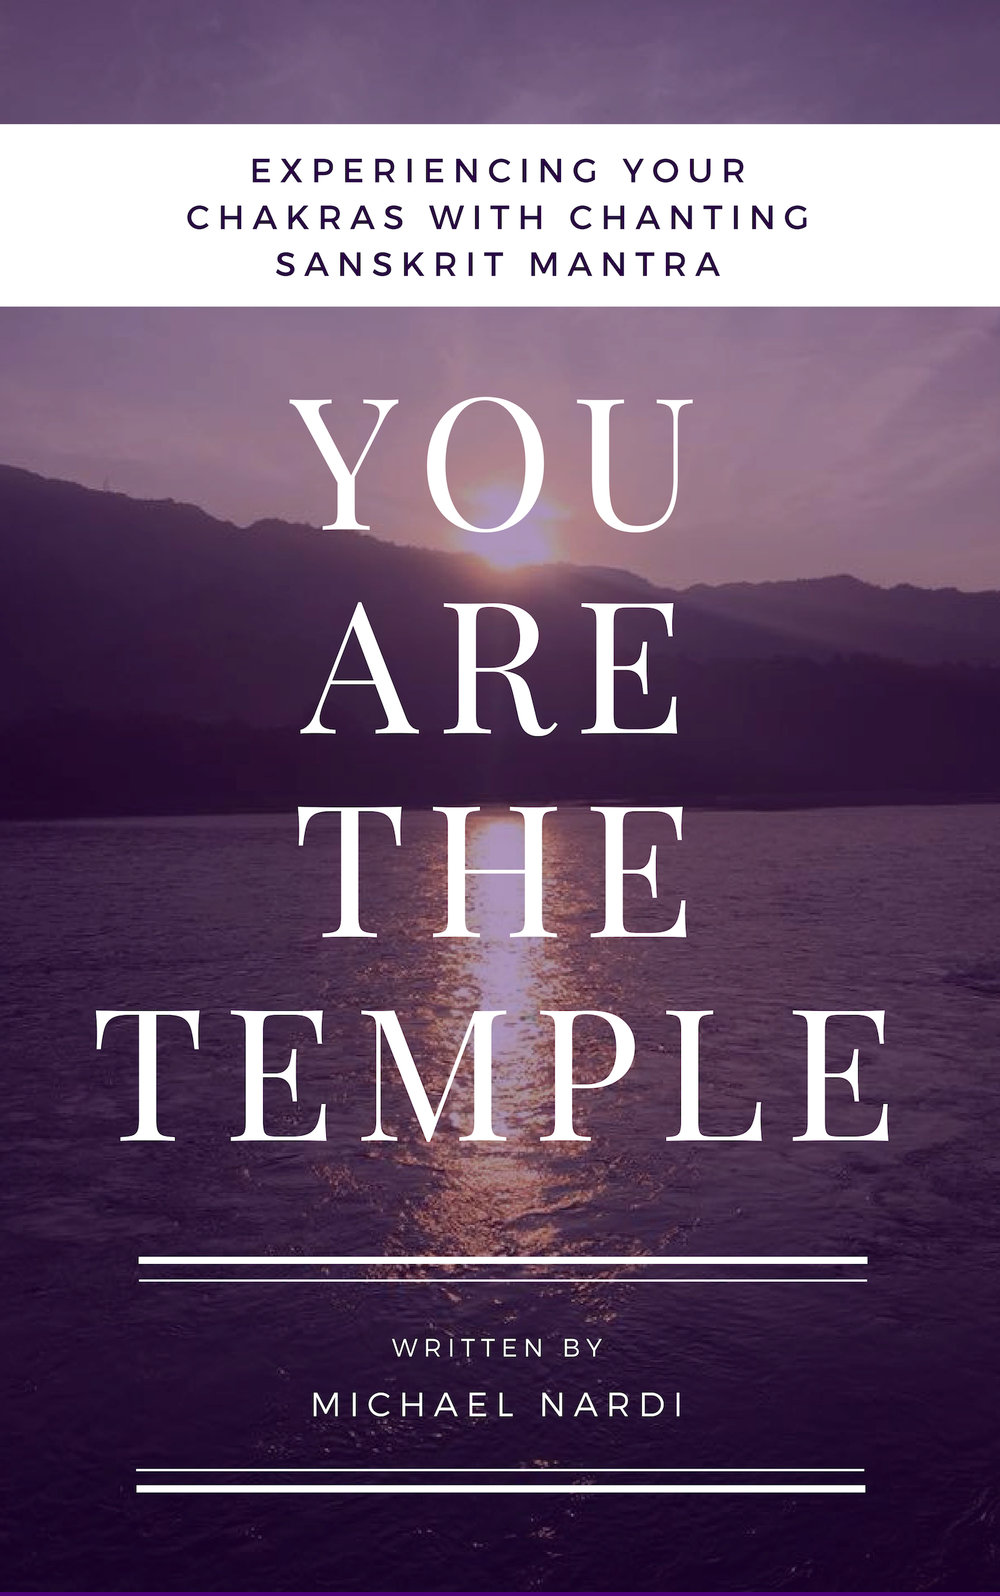 YOU ARE THE TEMPLE: EXPERIENCING YOUR CHAKRAS WITH CHANTING SANSKRIT MANTRA -